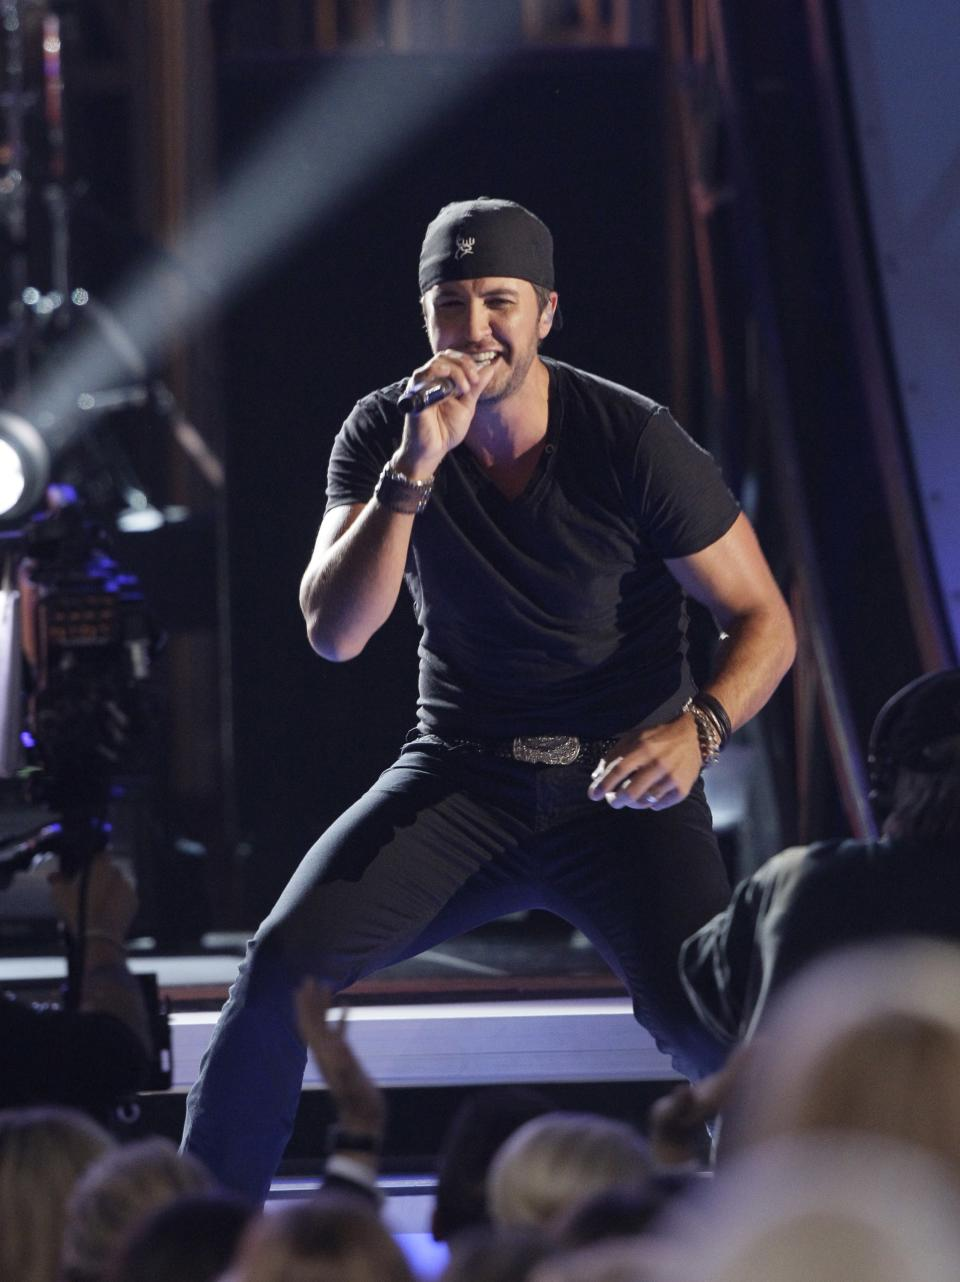 Luke Bryan performs onstage at the 46th Annual Country Music Awards at the Bridgestone Arena on Thursday, Nov. 1, 2012, in Nashville, Tenn. (Photo by Wade Payne/Invision/AP)